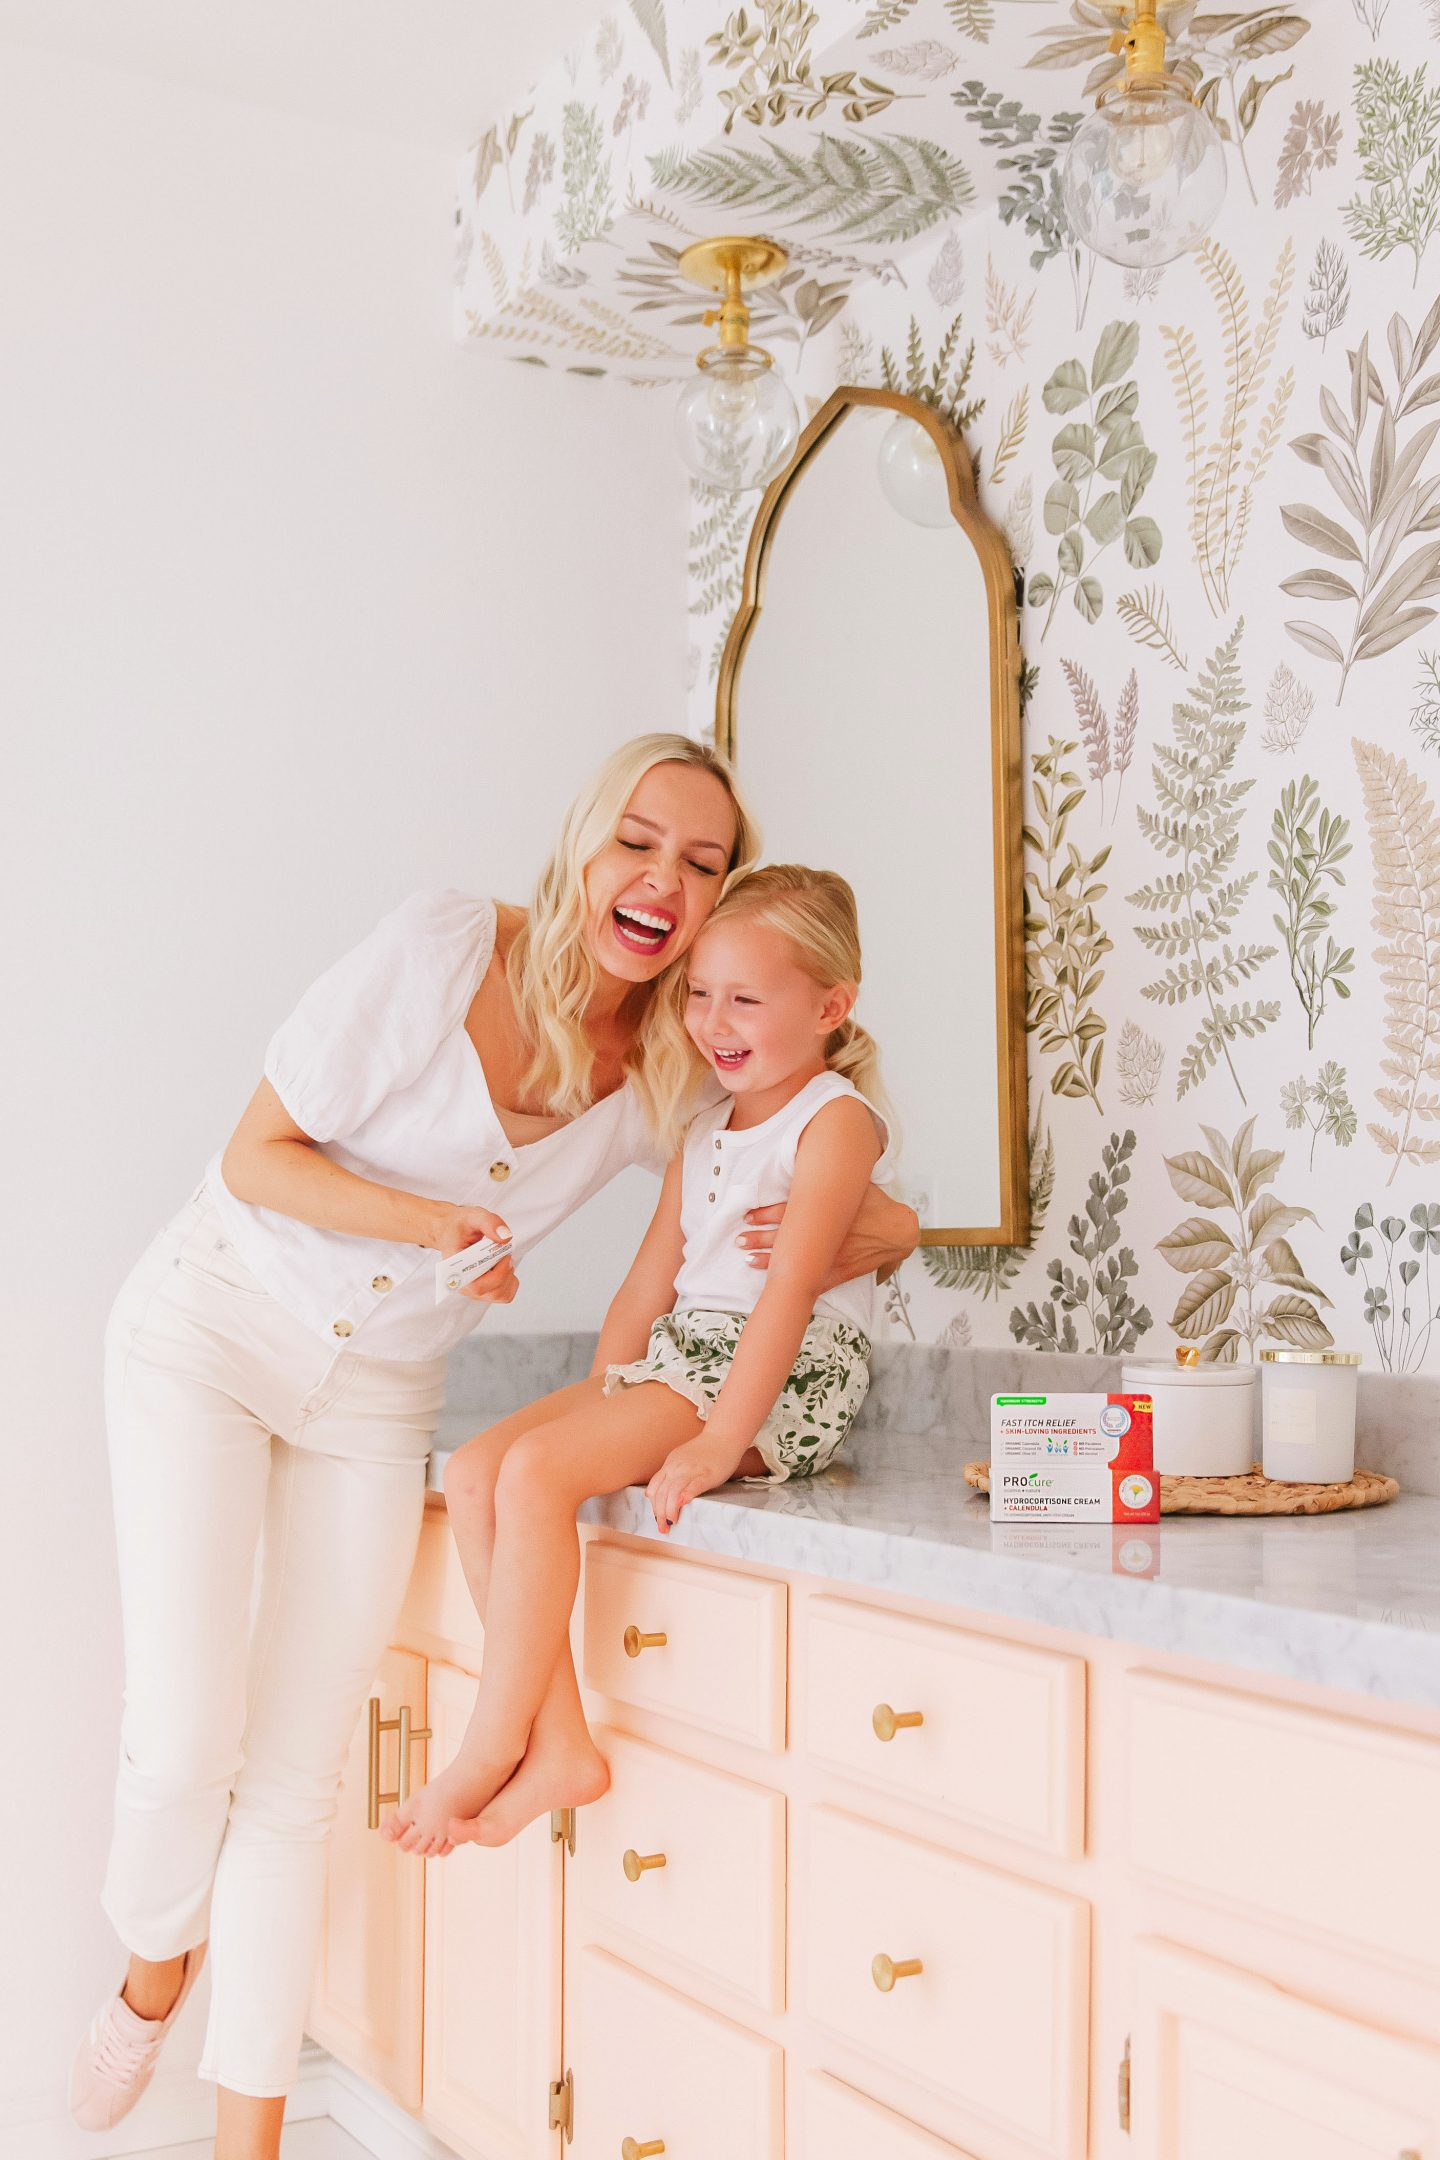 Procure Hydrocortisone Cream mom tips featured by top San Francisco fashion blogger Lombard and Fifth